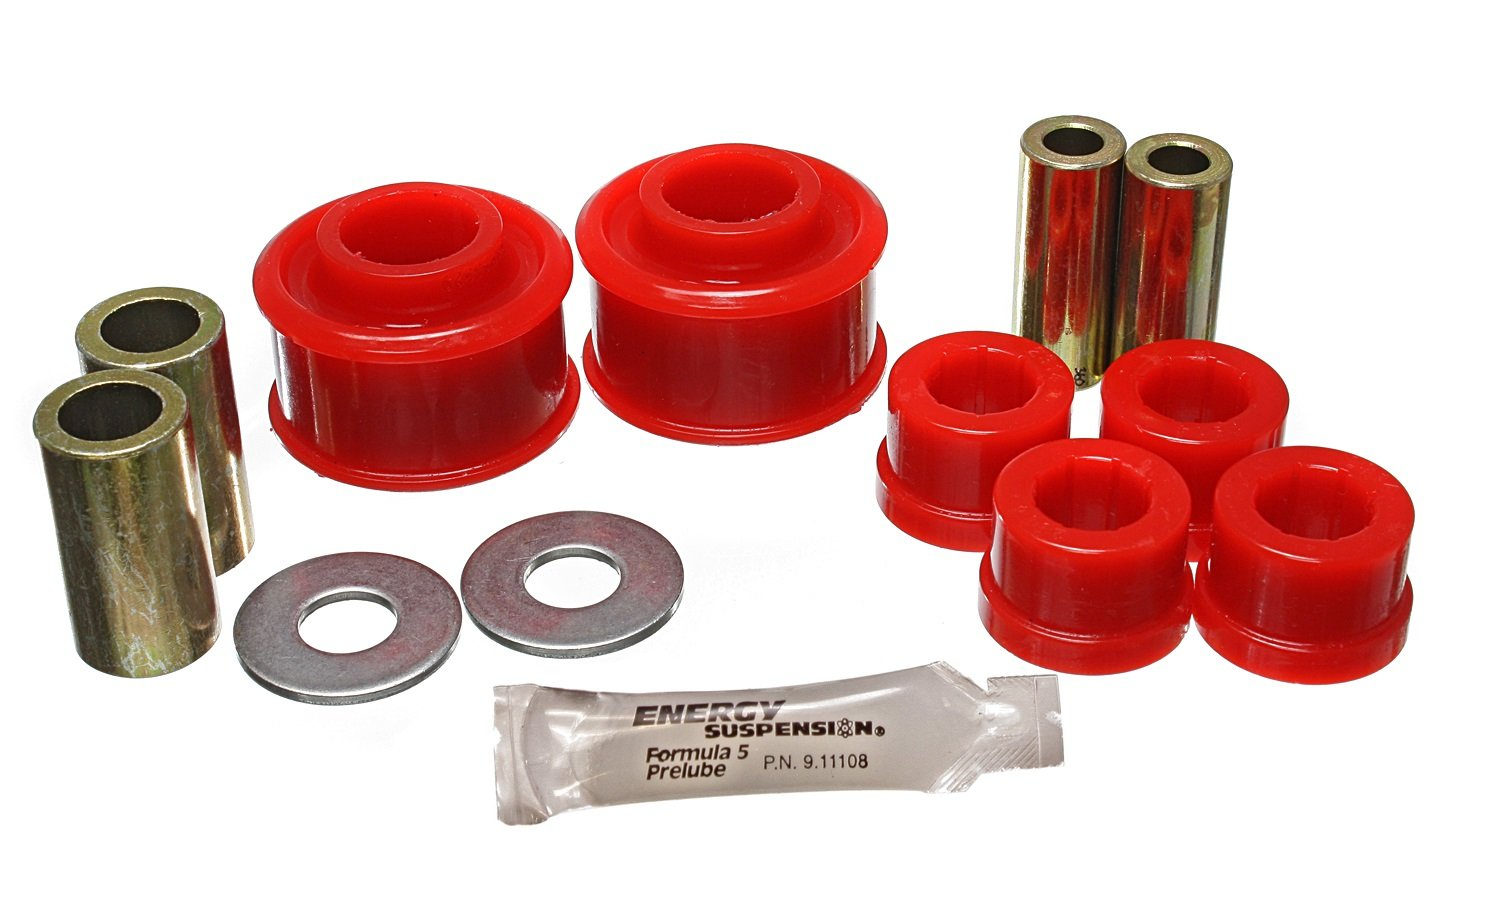 Energy Suspension 19.3102R Control Arm Bushing Set